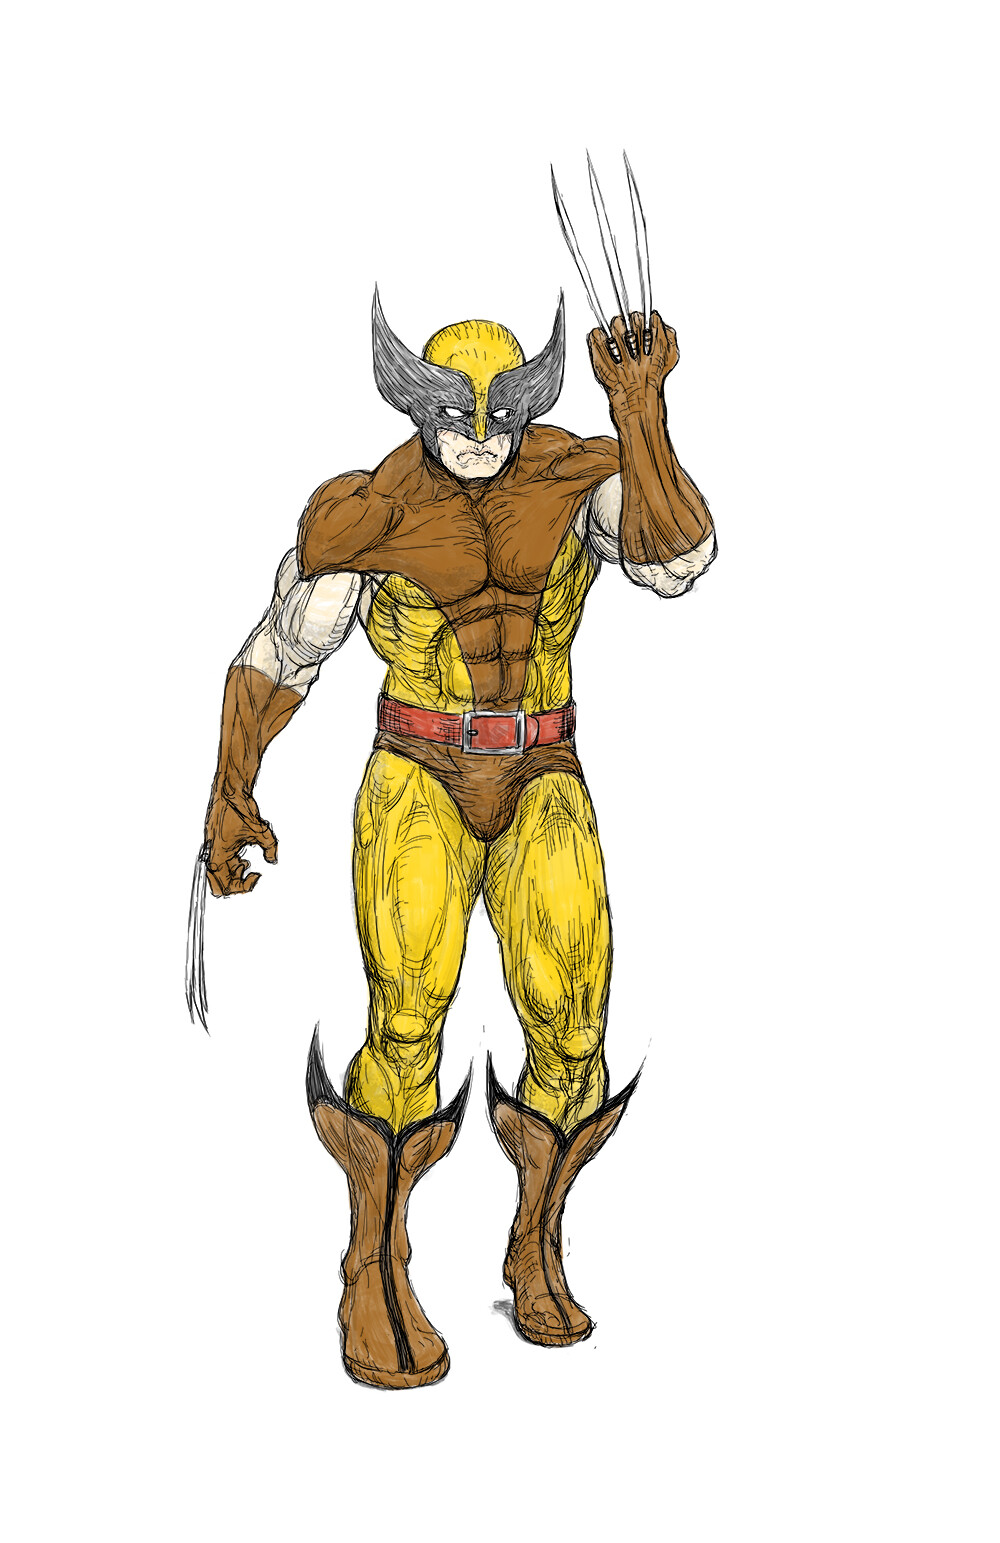 Donny yi george 001 wolverine 1543x1000